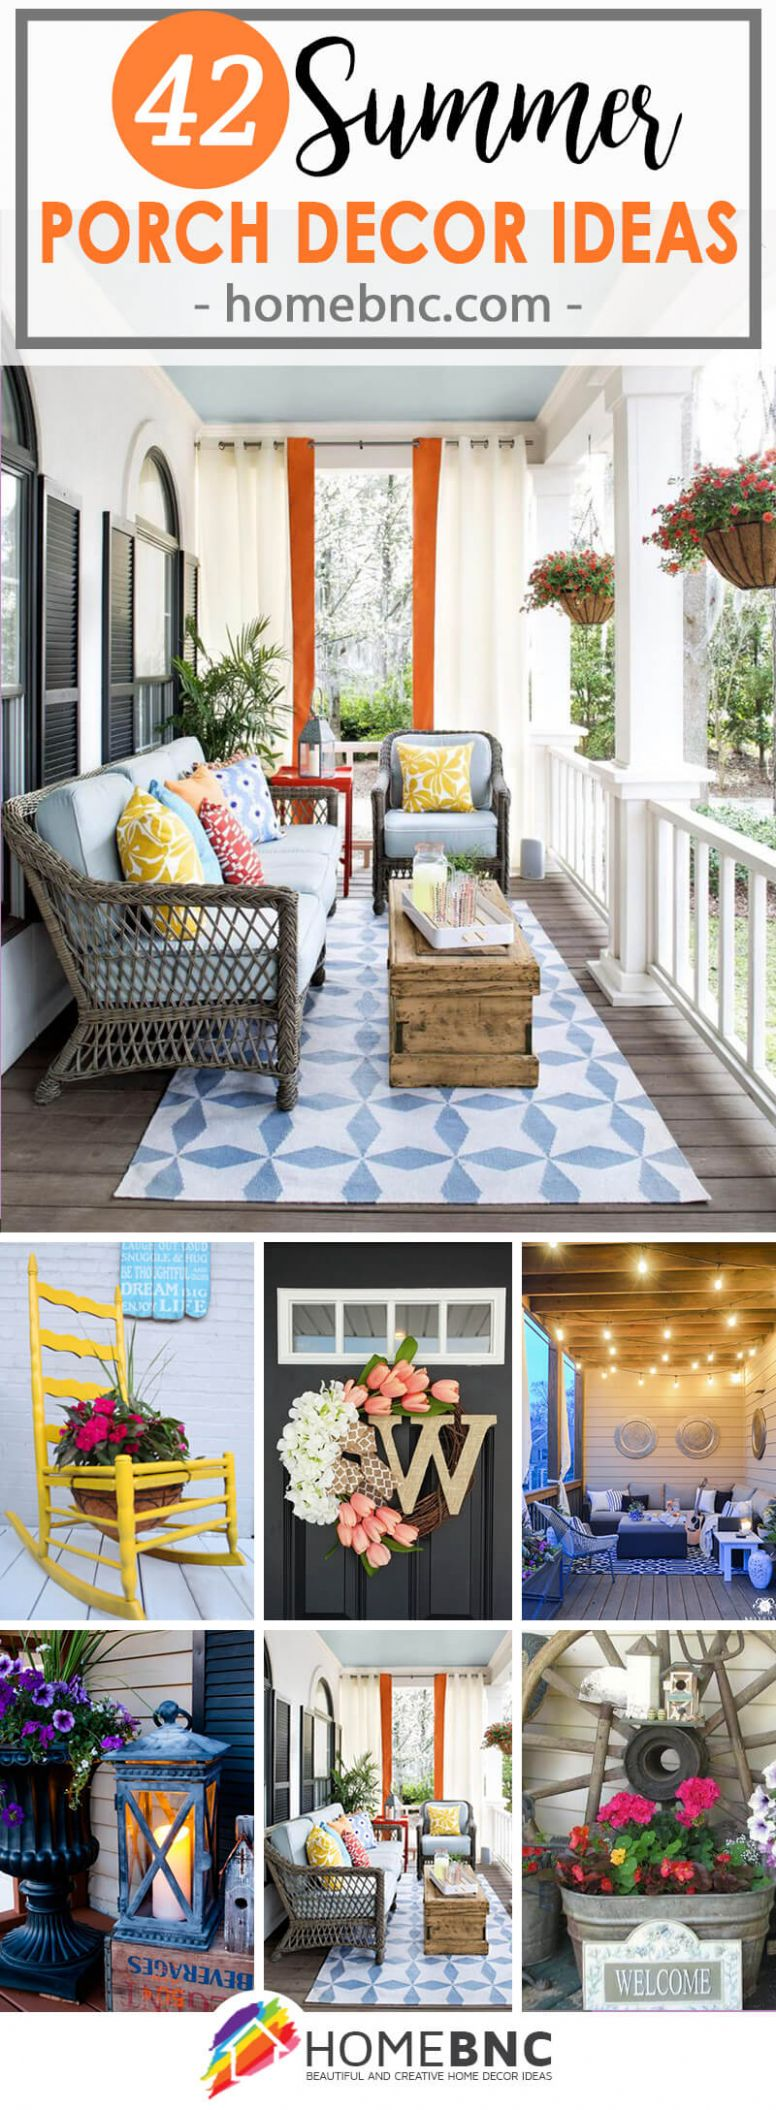 11 Best Summer Porch Decor Ideas and Designs for 11 - front porch decor for summer